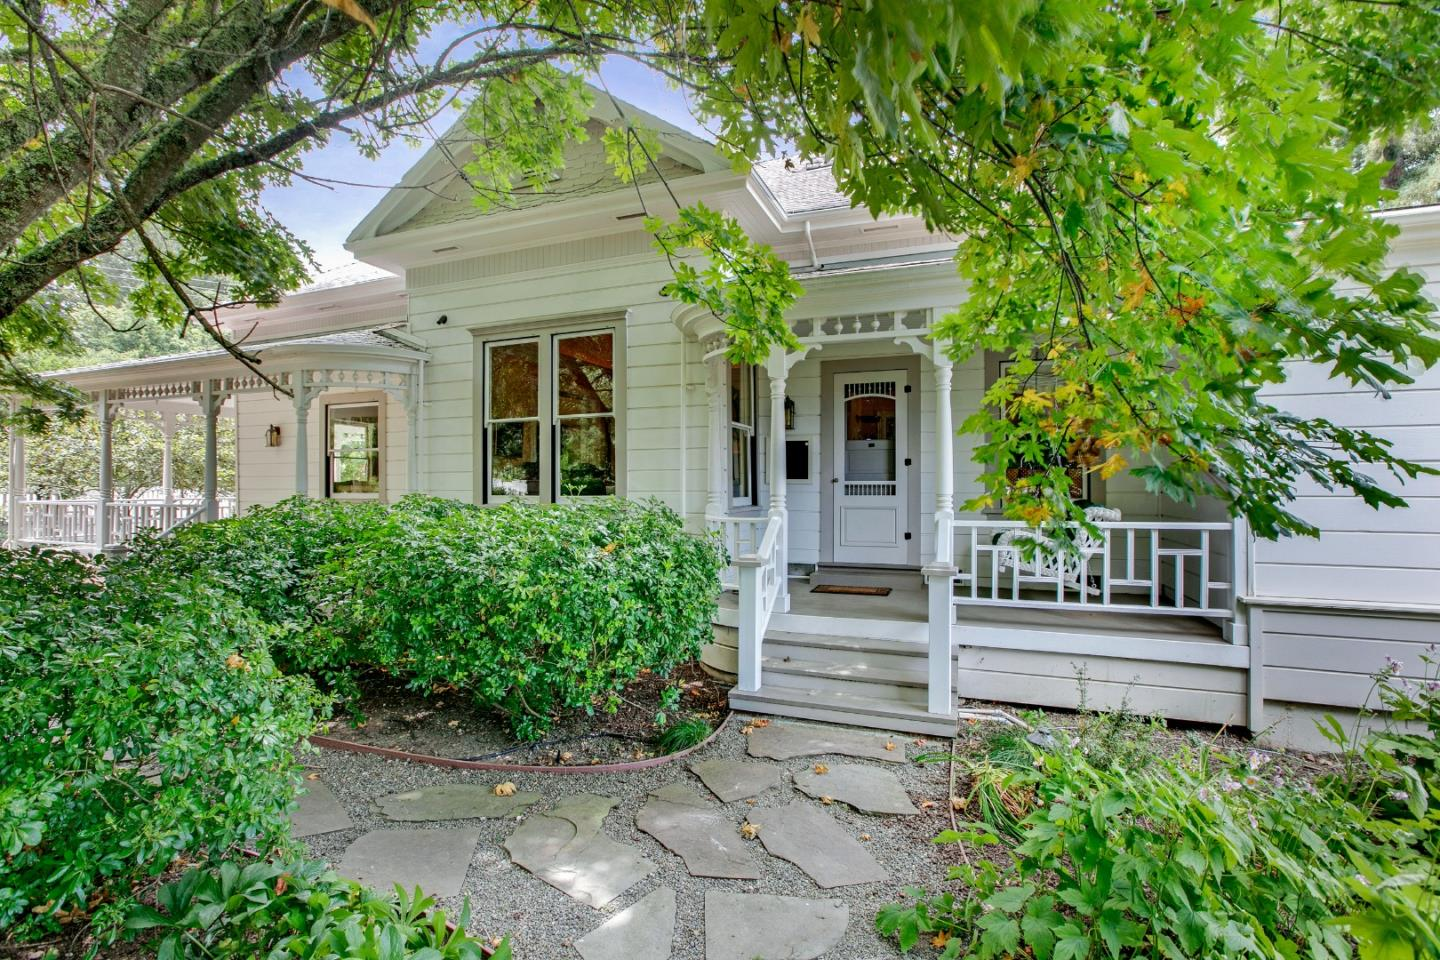 Sqft includes 2 guest units. Main house is 2325 +/- Sqft.Beautiful historical Victorian restored beyond its original glory.Gated parcel includes the remodeled Victorian home,original coach house,& replica of the original 2 story barn. The majority of land is useable.Main house has 3 bdrms,2 ba\ths w/marble tile,Jacuzzi-type tub in master bath & steam shower in the guest bath & a family room/library,which could be 4th bdrm.12ft ceilings & Brazilian cherry wood floors,formal living rm/parlor,large dining rm w/fire place.Gourmet kitchen w/slab granite counters,large center island w/quartz counter, top of the line appliances,cherry wood cabinets.Wine cellar,located below the main house.The coach house,has been transformed into a private quaint 1300 +/- sqft, 2 bdrm/1bth cottage has & has separate gated driveway & address.The 2400 Sqft barn includes, parking for 3+ cars,workshop,700 sqft office/guest home w/marble tiled bath & kitchen w/granite plus a 200sqft fitness room.Loma & LG schools.